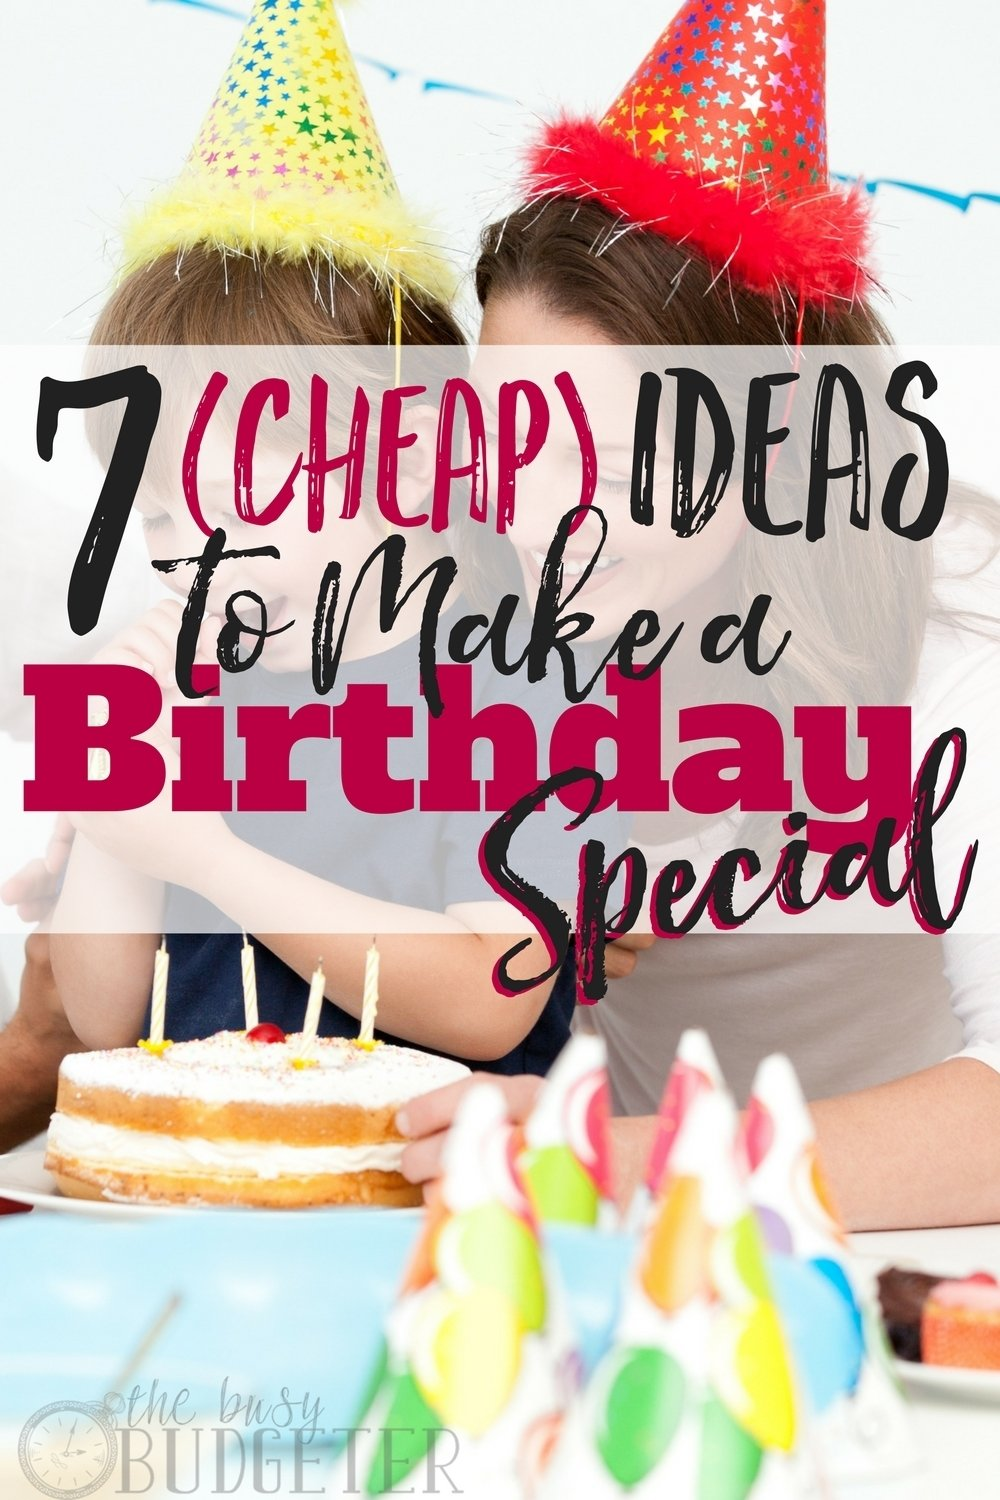 10 Lovely Cheap Birthday Ideas For Husband 7 cheap ideas to make a birthday special busy budgeter 2